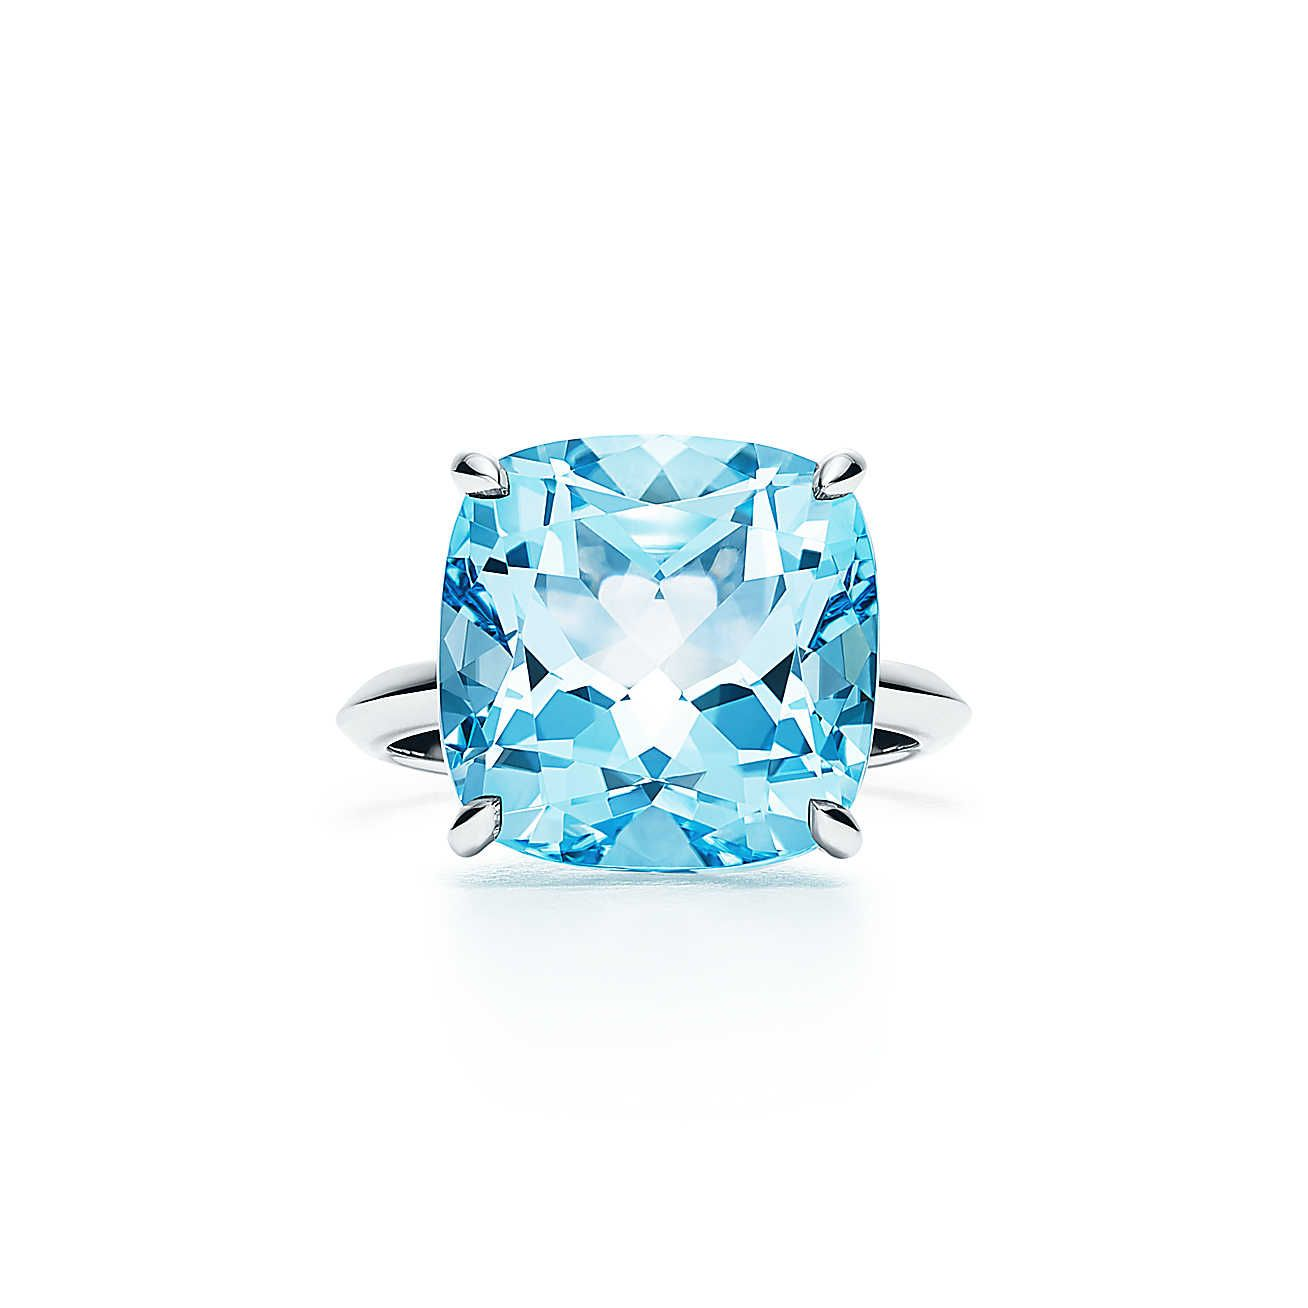 jewellery carat ramsdens yellow gold image rings blue diamond topaz amp ring